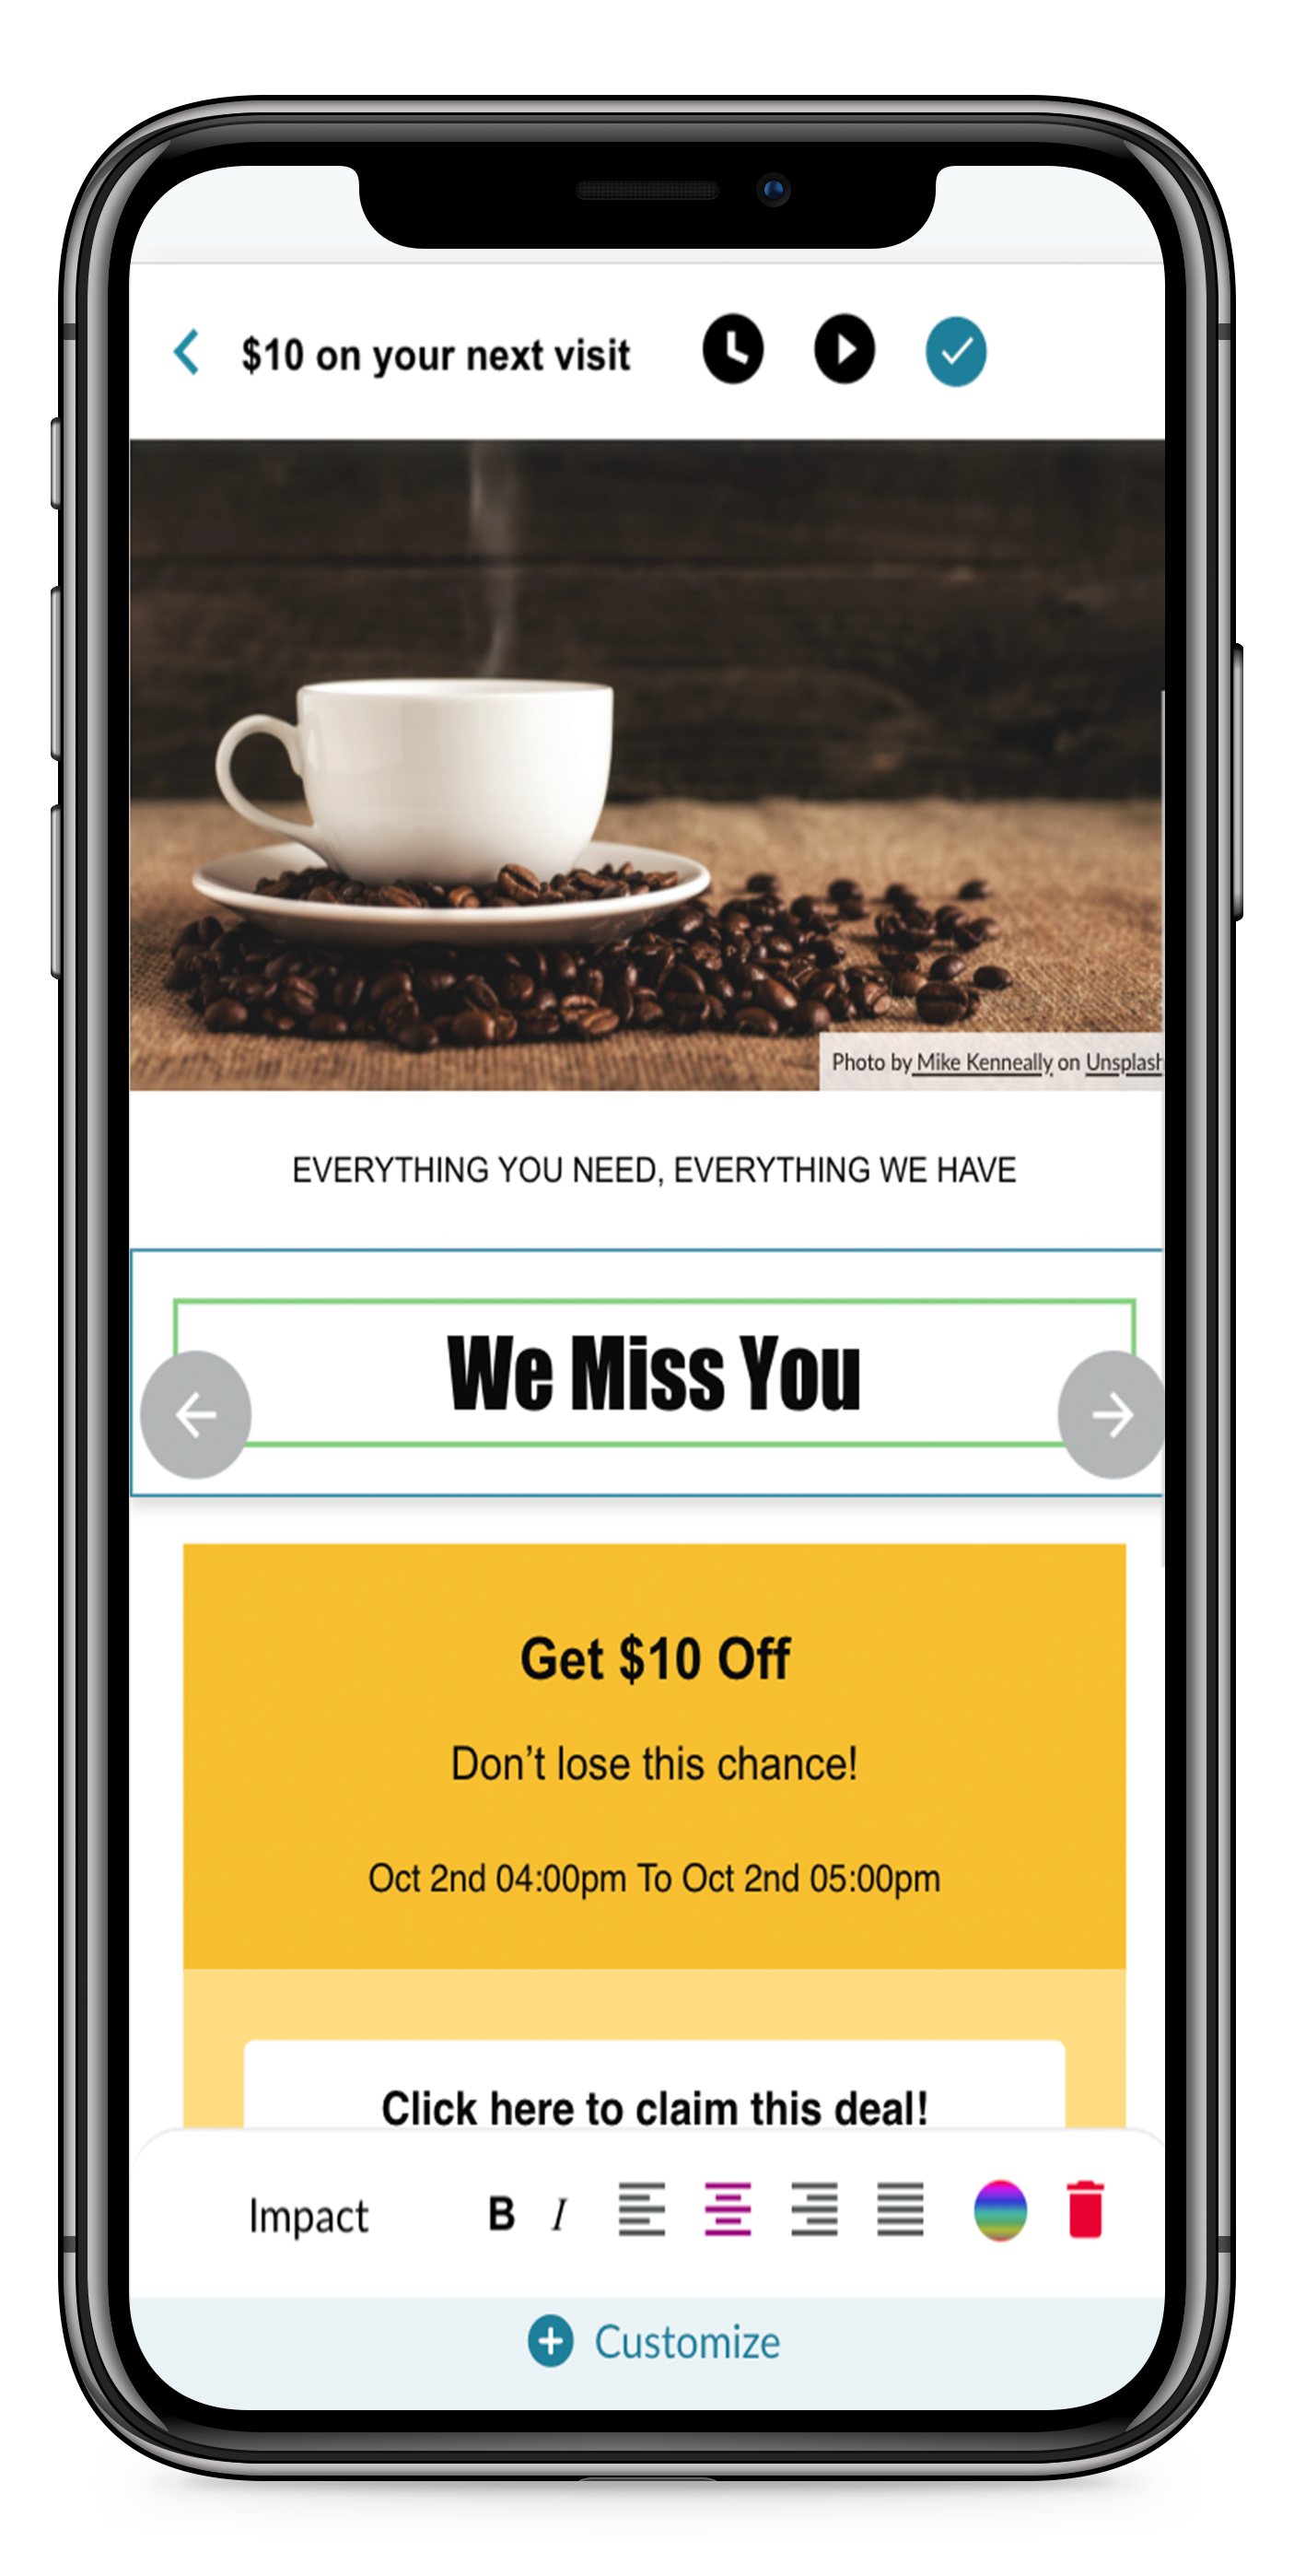 Marketing Email On Mobile